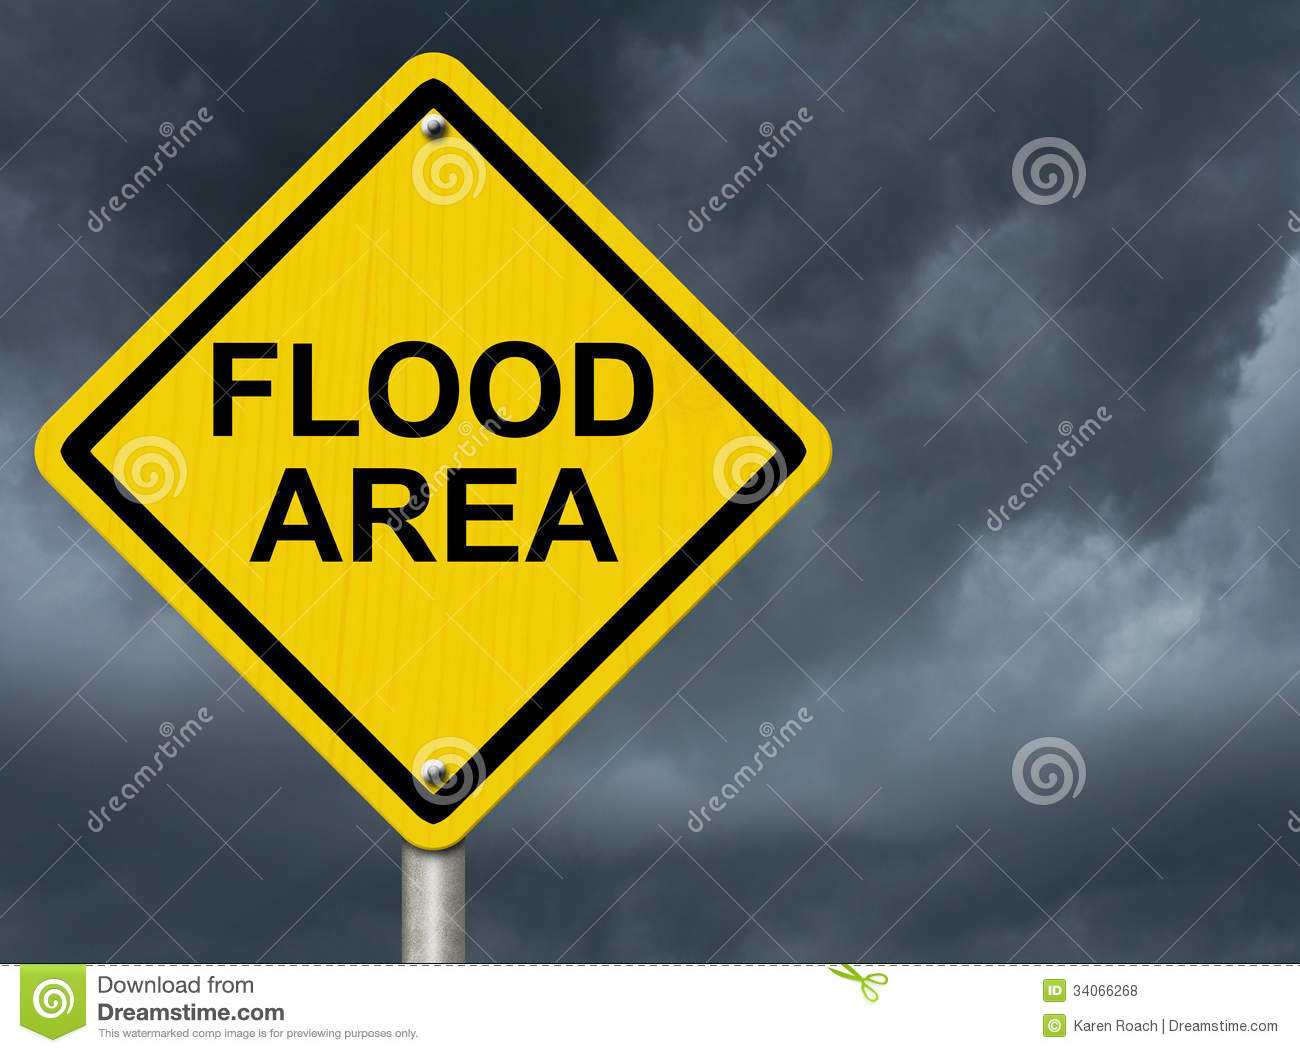 Flood Warning Royalty Free Stock Photos Image 34066268